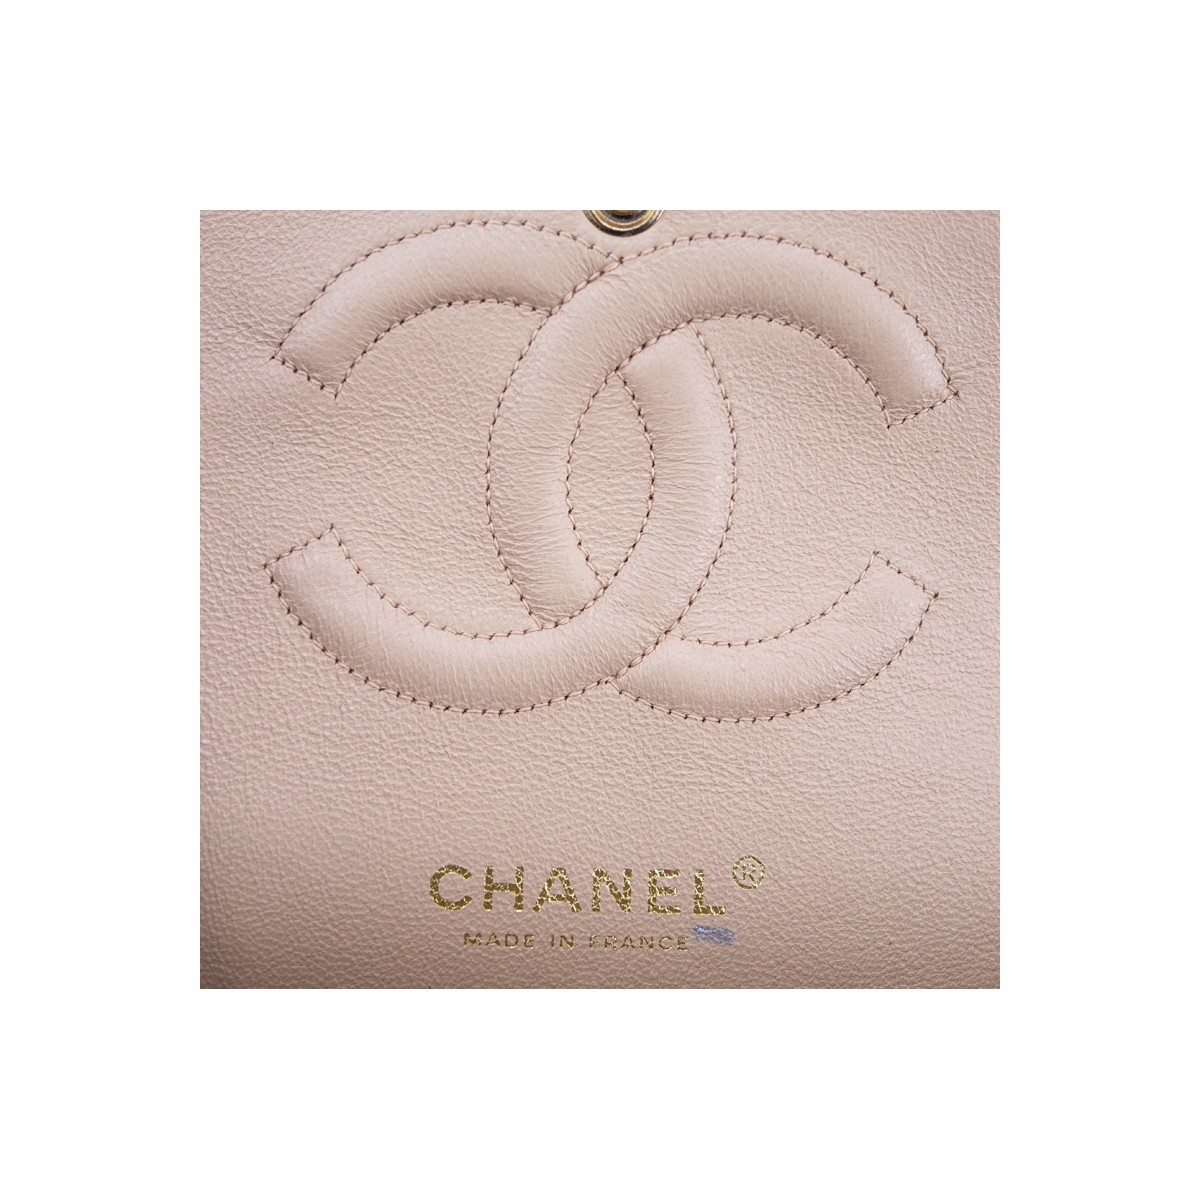 Chanel Light Beige Quilted Leather Bicolor Classic Double Flap 26 Bag. Gold tone hardware, beige interior with zippered and patch pockets, chain interlaced with leather.